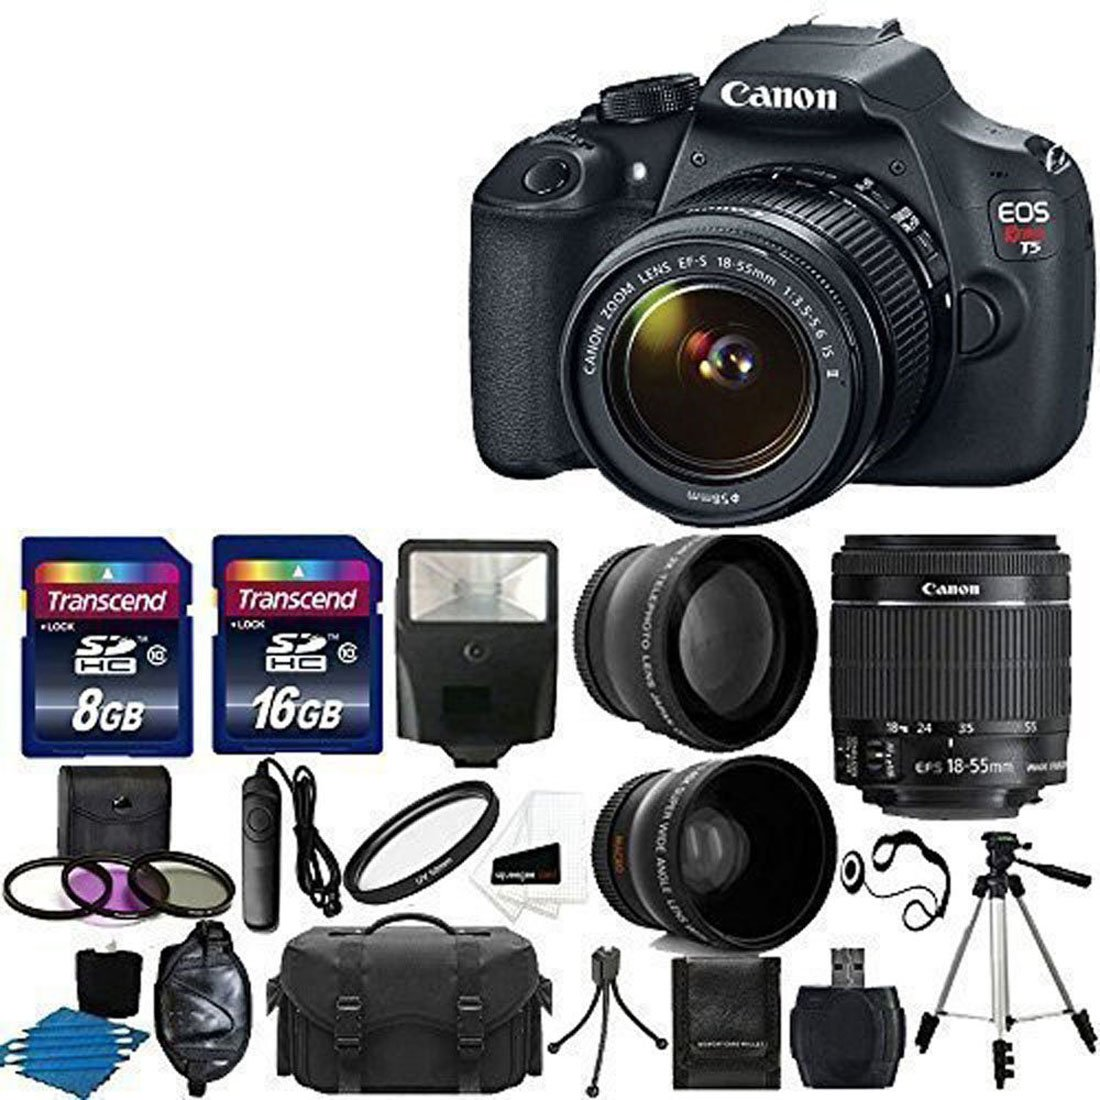 Canon EOS Rebel T5 DSLR Digital Camera & EF-S 18-55mm f/3.5-5.6 IS Lens + 2x telephoto Lens + 58mm Wide Angle Lens + Flash + 59-Inch Tripod + UV Filter Kit + 24GB SDHC card + Accessory Bundle